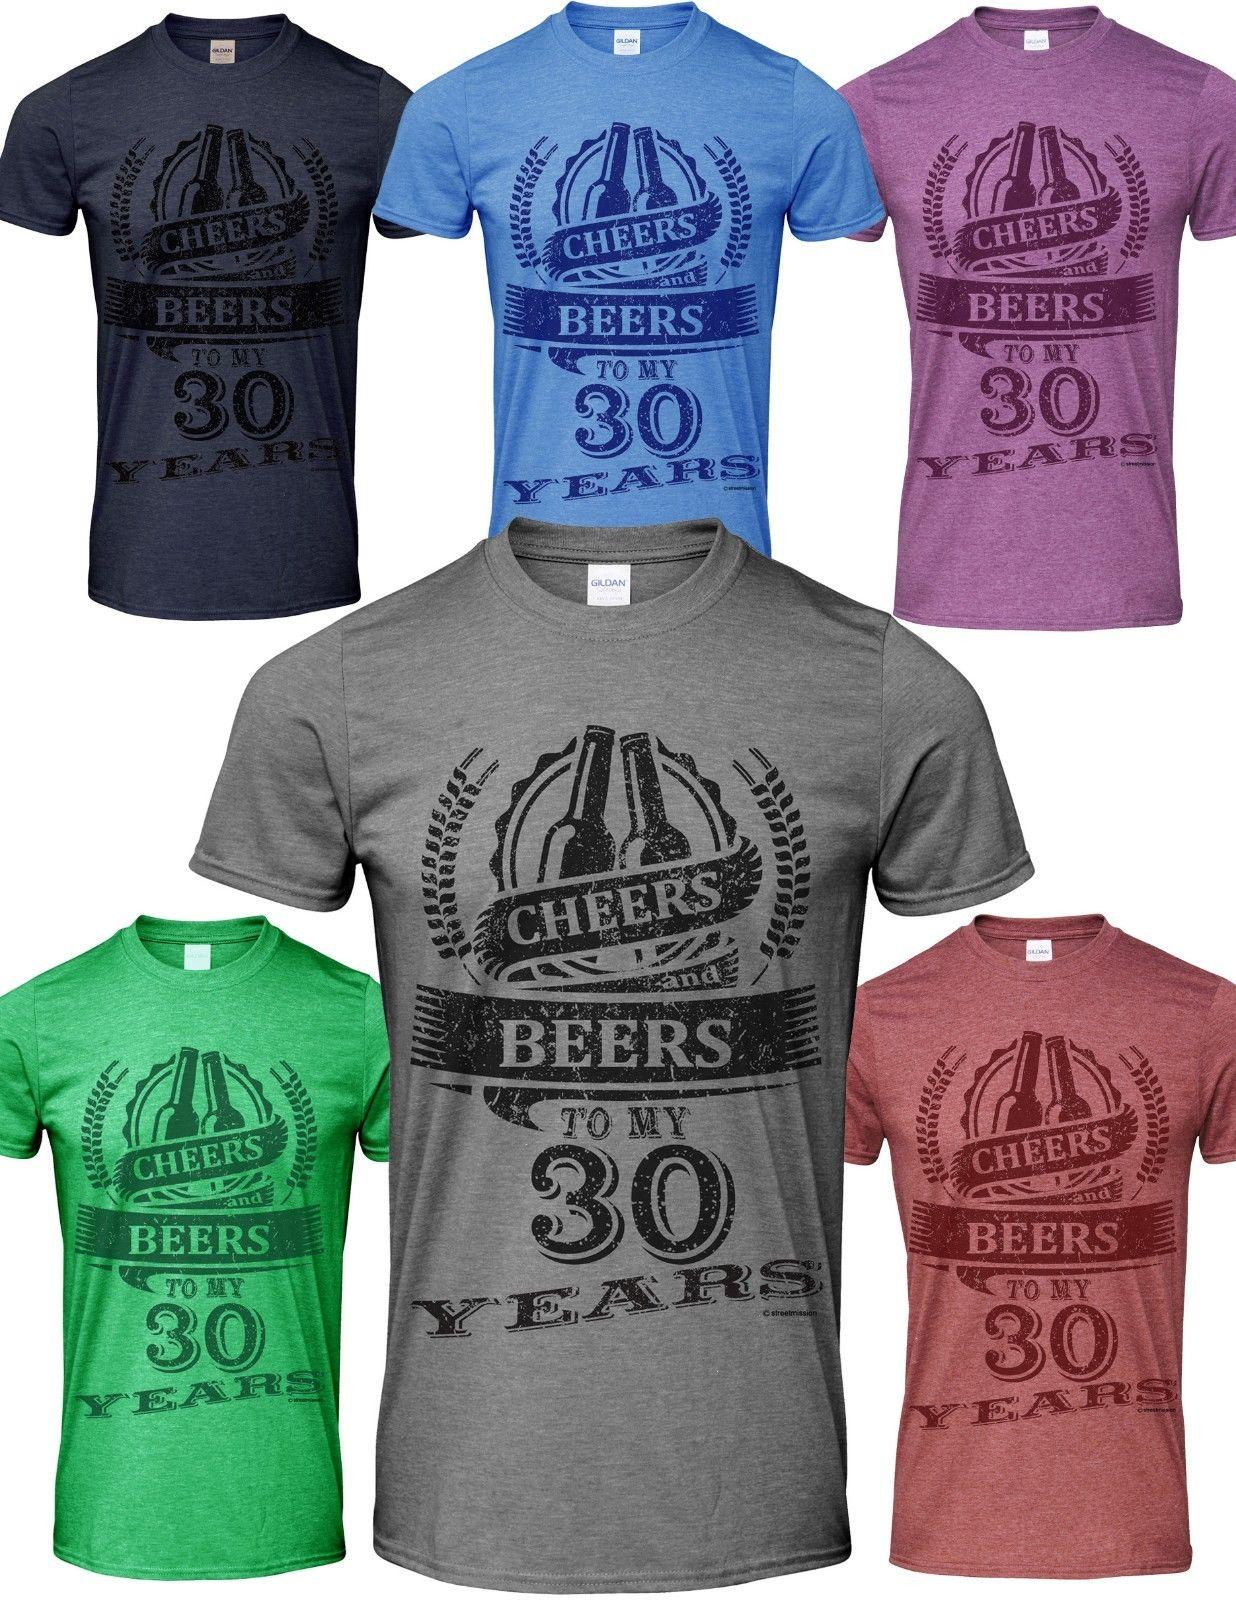 e720b5e93 Details Zu 30th Birthday Gift Celebration Cheers And Beers Mens T Shirt  Humour Slogan Quote Personalised T Shirt Mens Tee Shirts From Lukehappy14,  ...